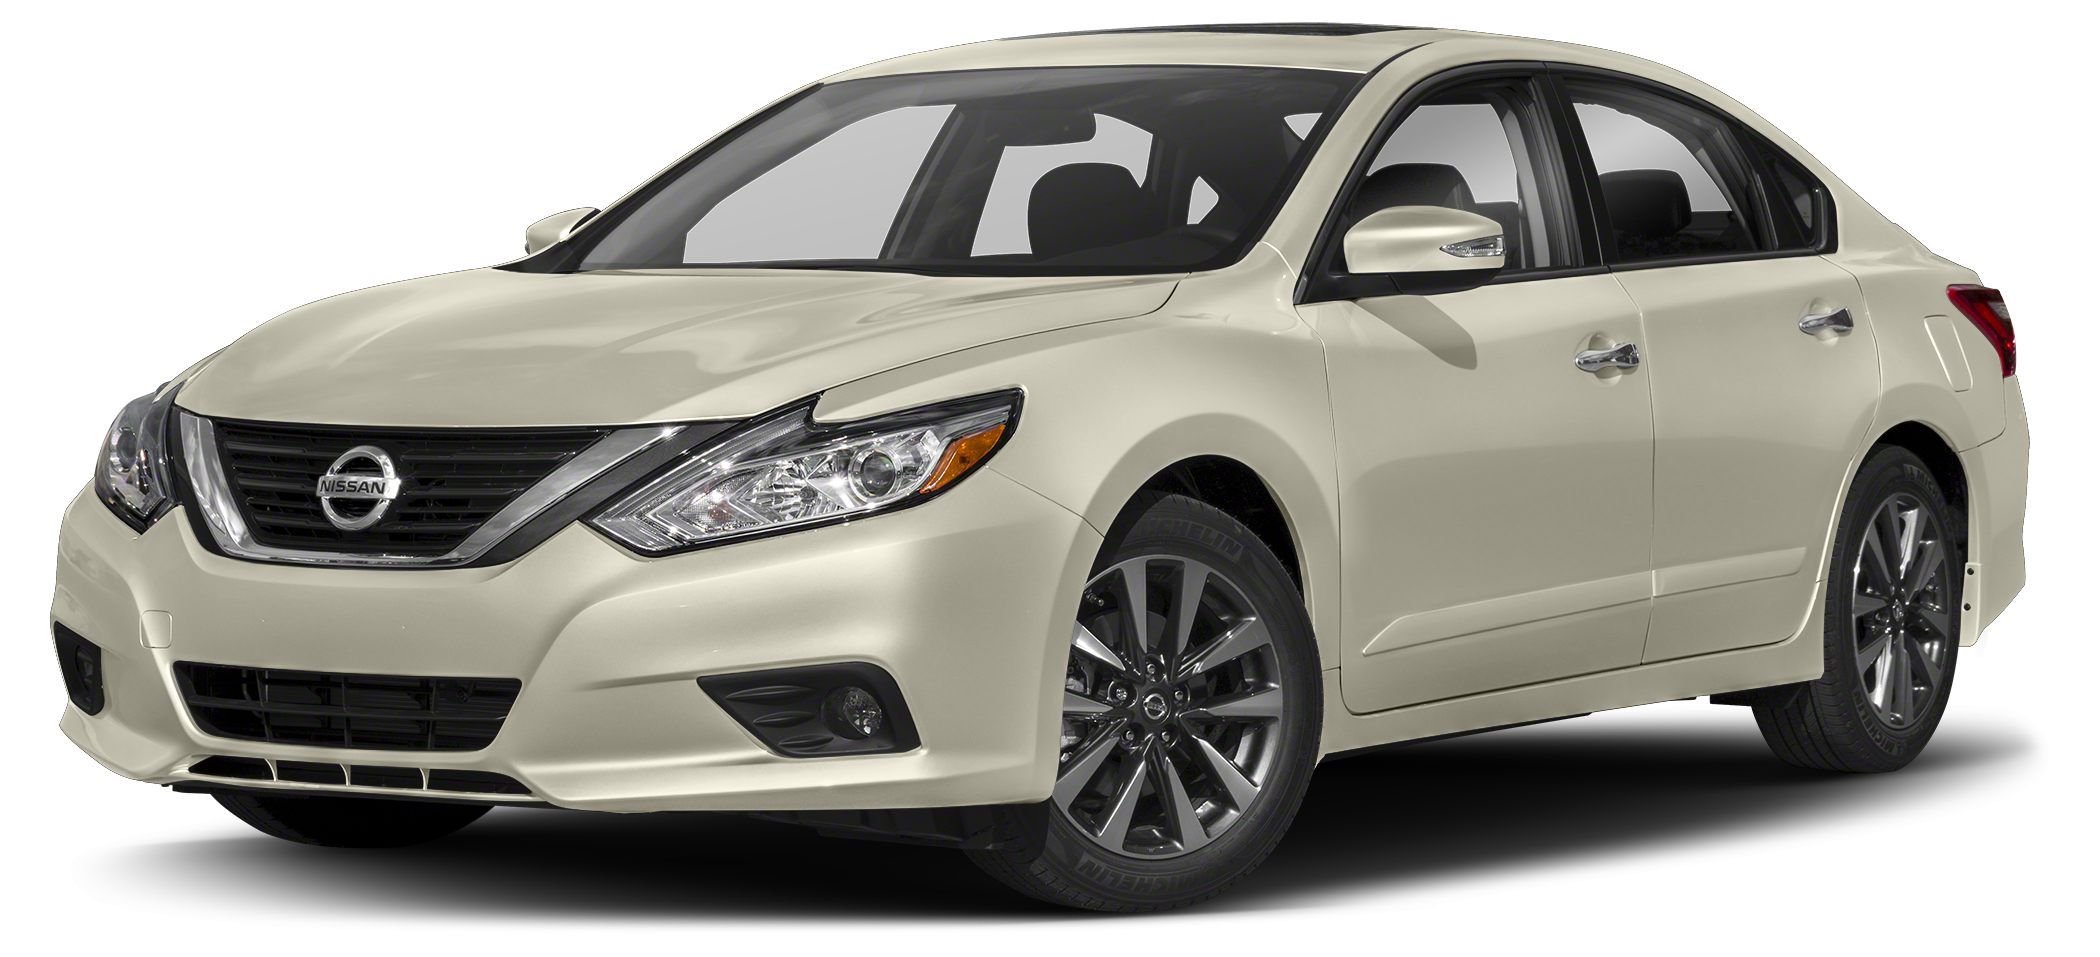 2017 Nissan Altima 25 SL Nissan Certified CARFAX 1-Owner PRICED TO MOVE 400 below NADA Retail